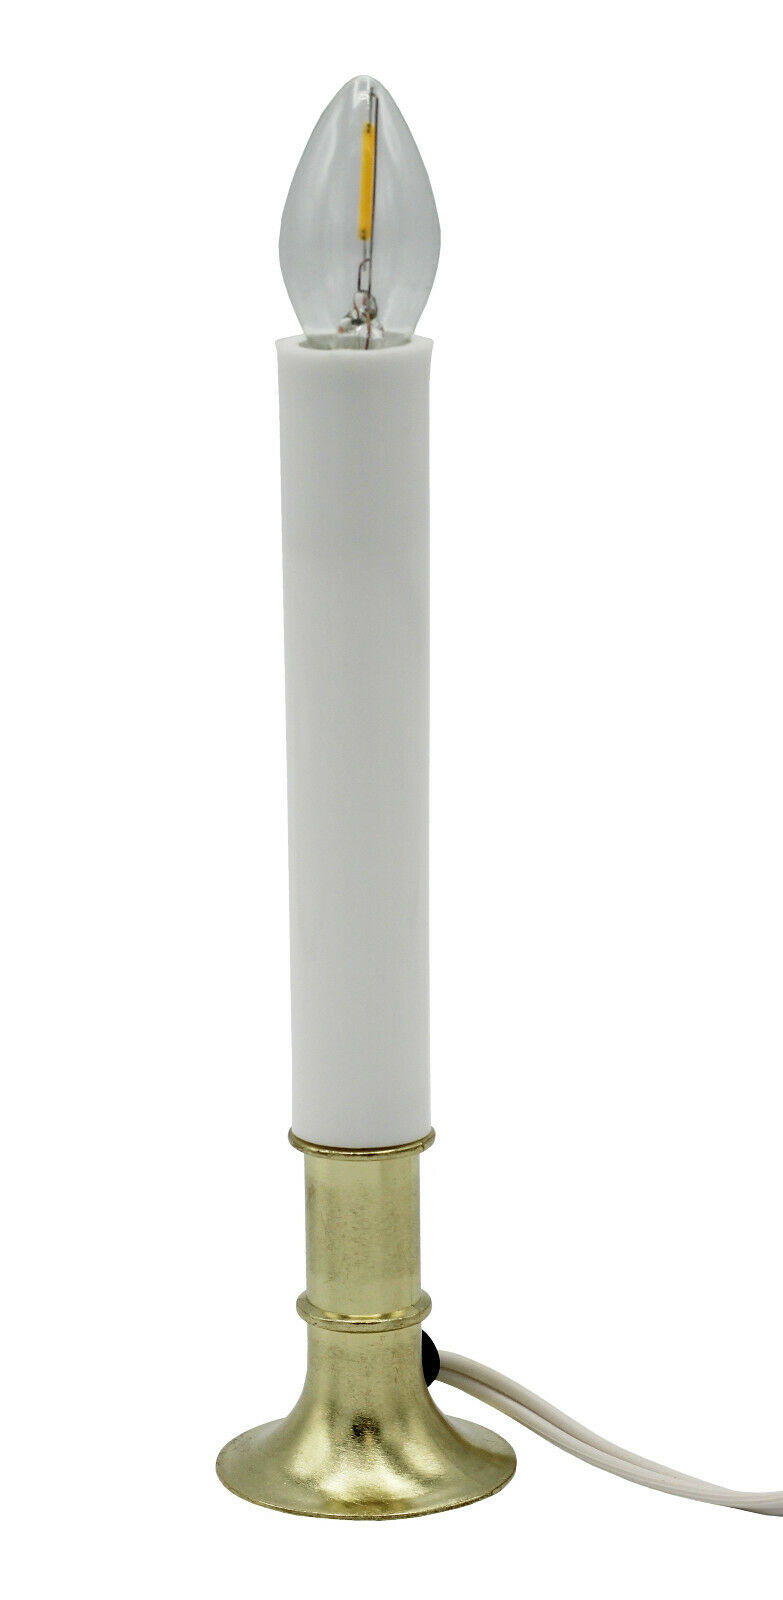 Electric Window Candle Lamp with LED Bulb, On/Off Switch, Brass Plated Base Candles